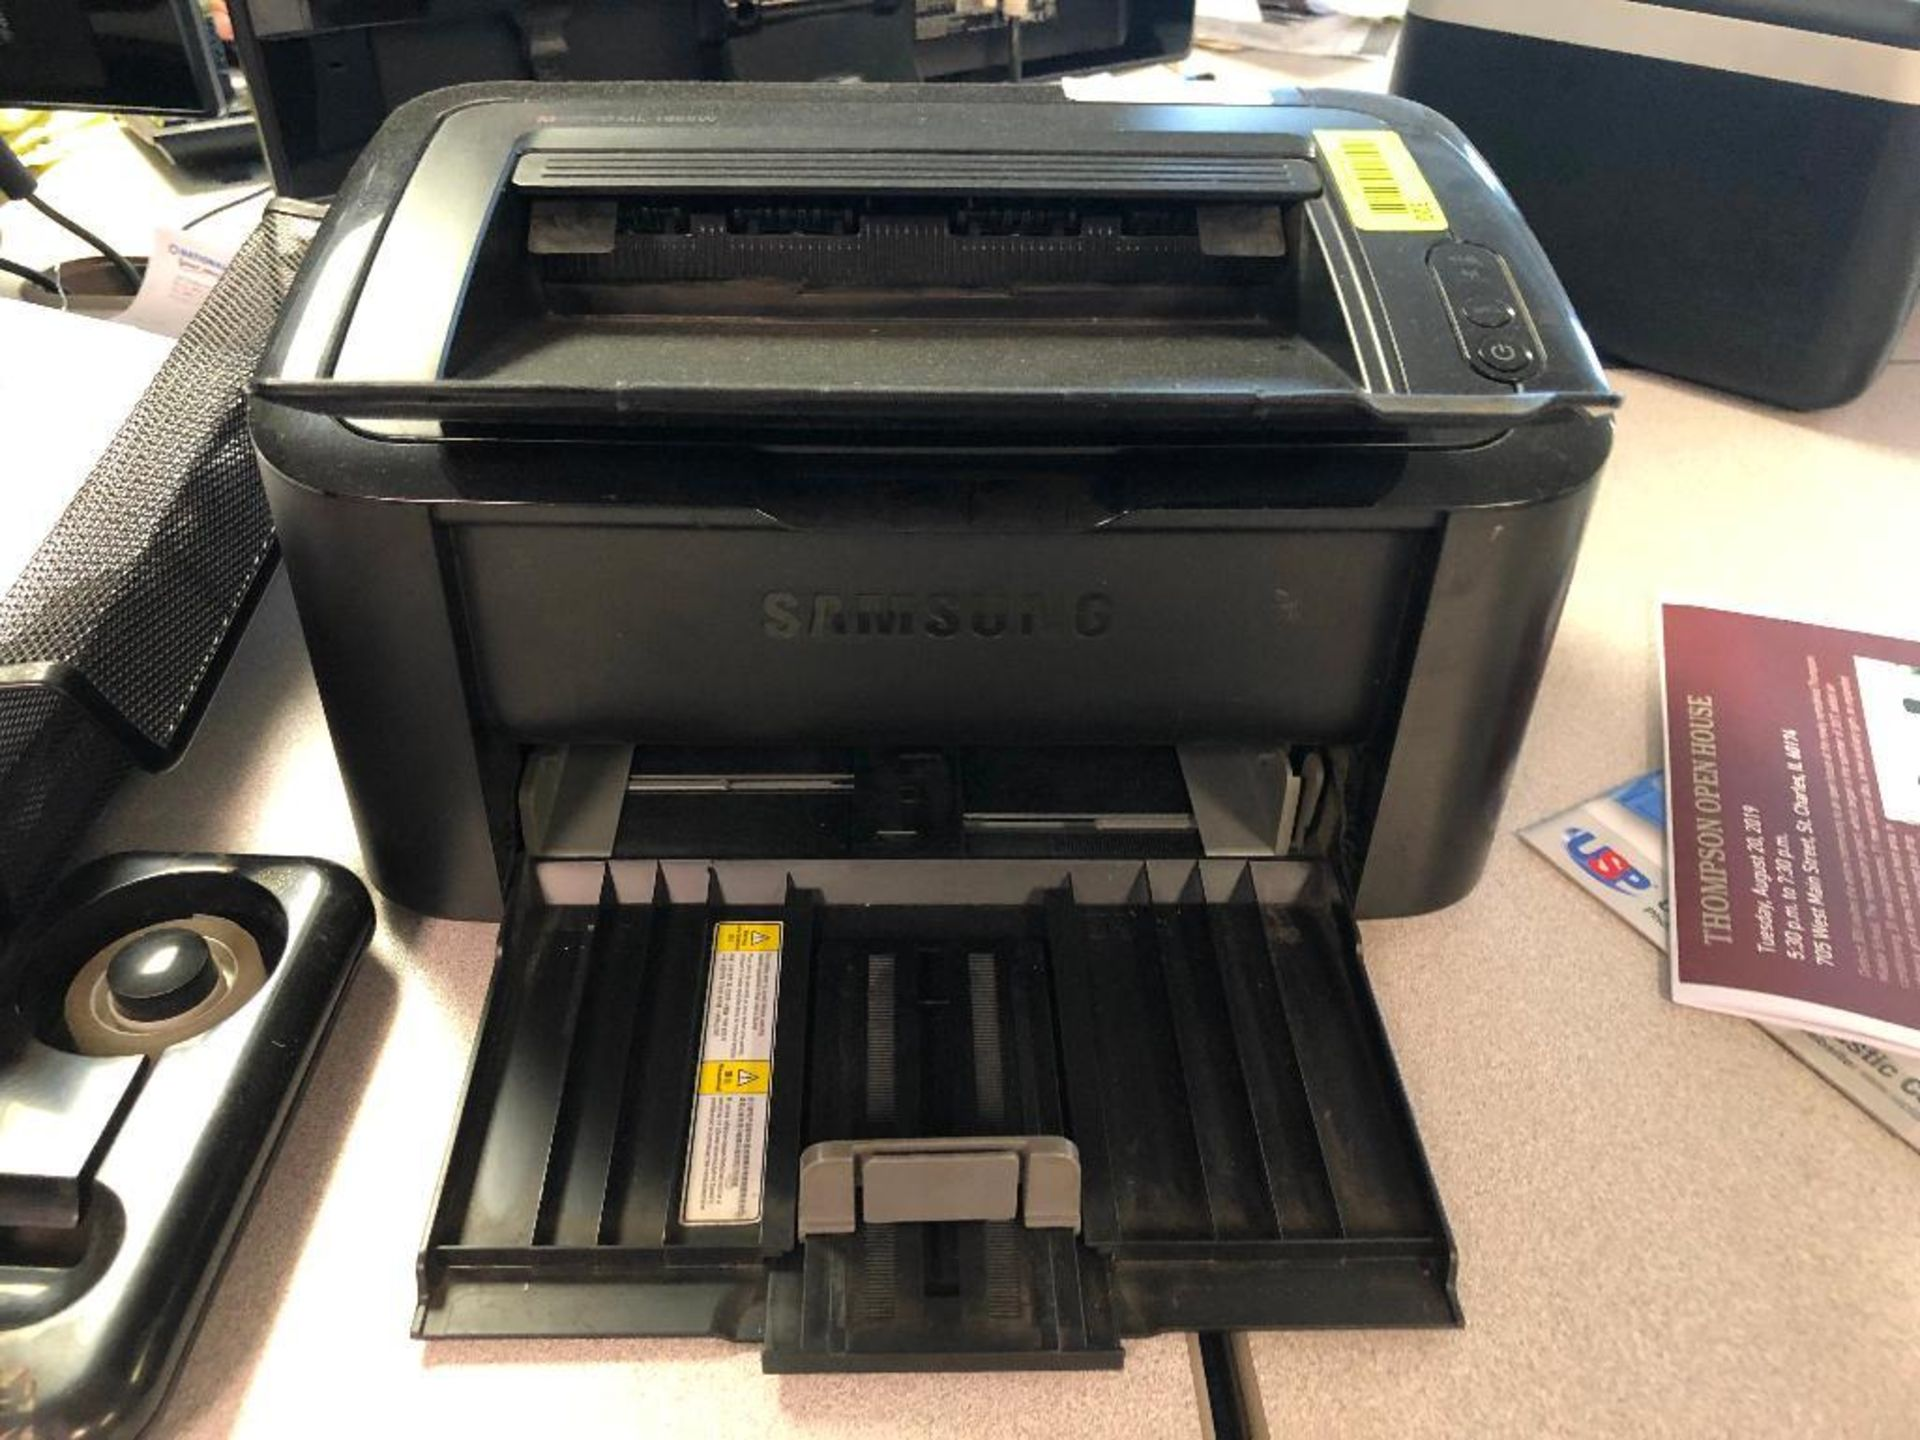 Lot 320 - DESCRIPTION: SAMSUNG ML-1865W OFFICE PRINTER BRAND / MODEL: SAMSUNG ML-1865W LOCATION: OFFICE QTY: 1